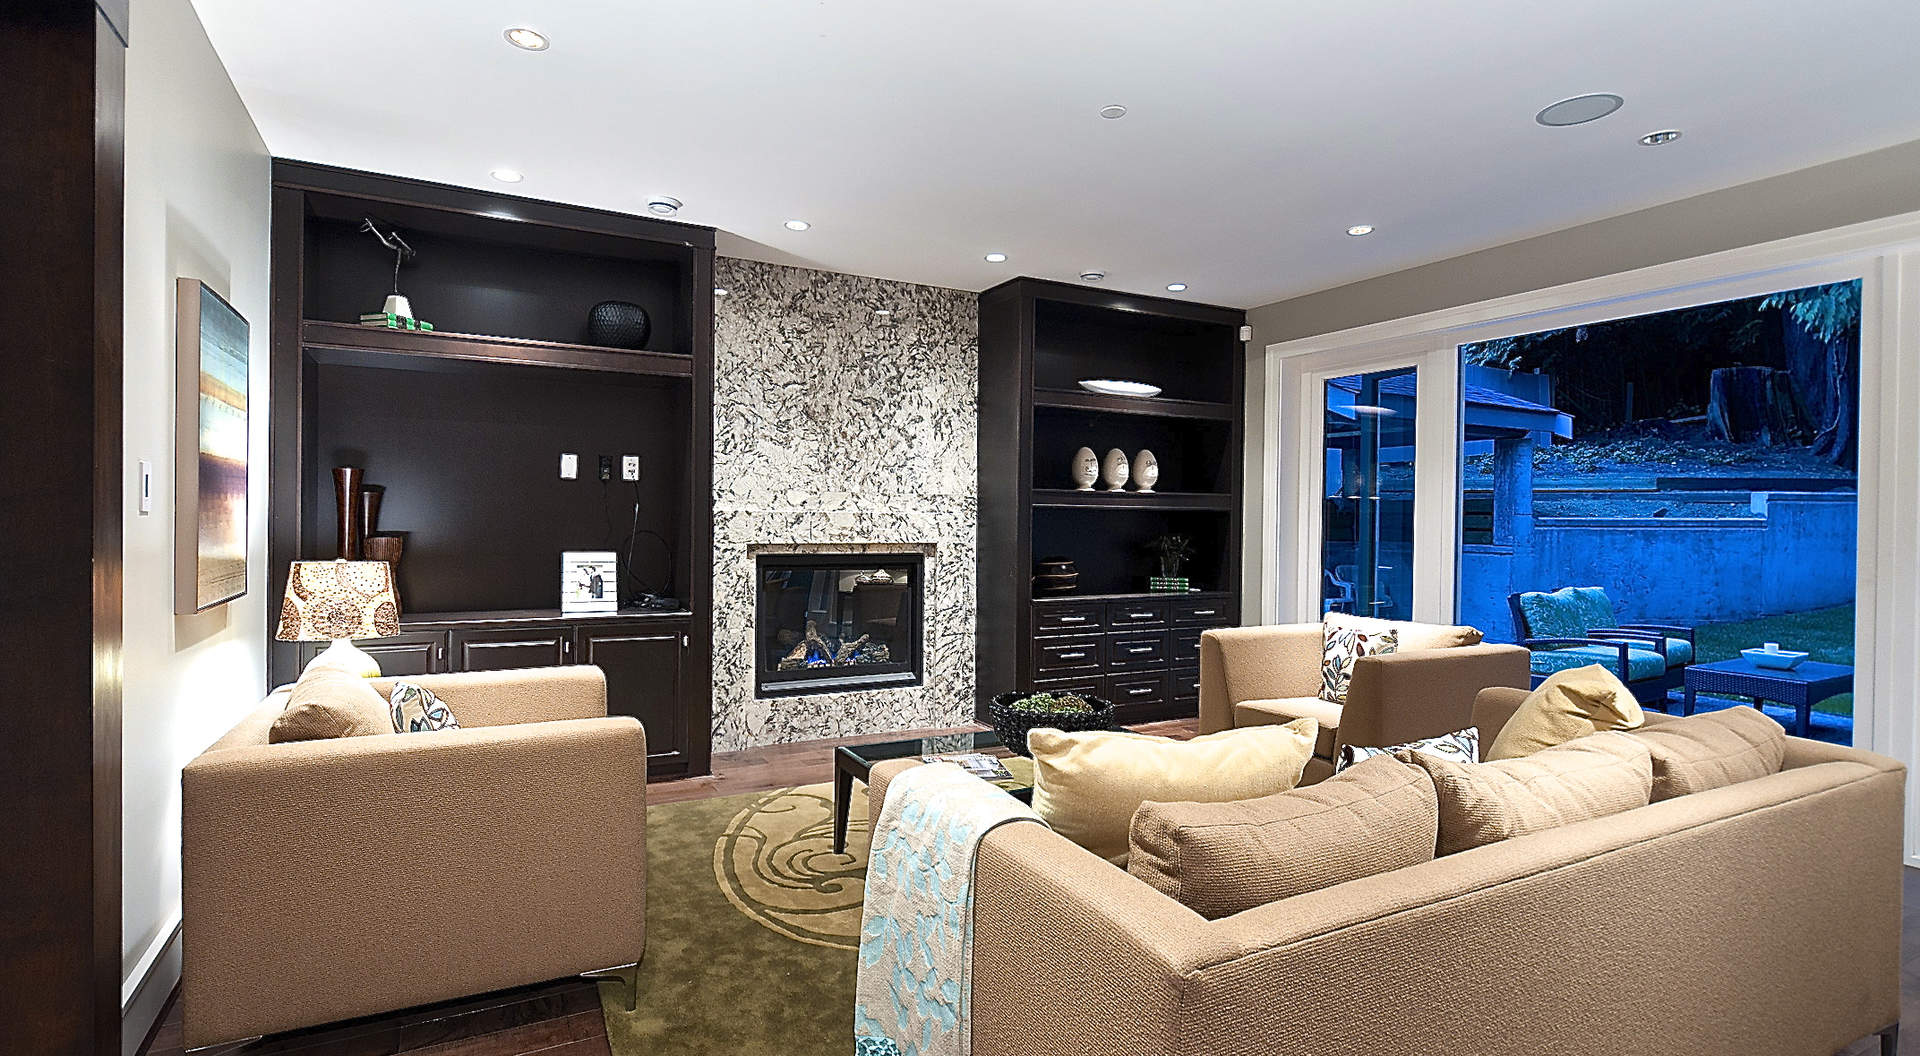 Adjoining Family Room with Media Center